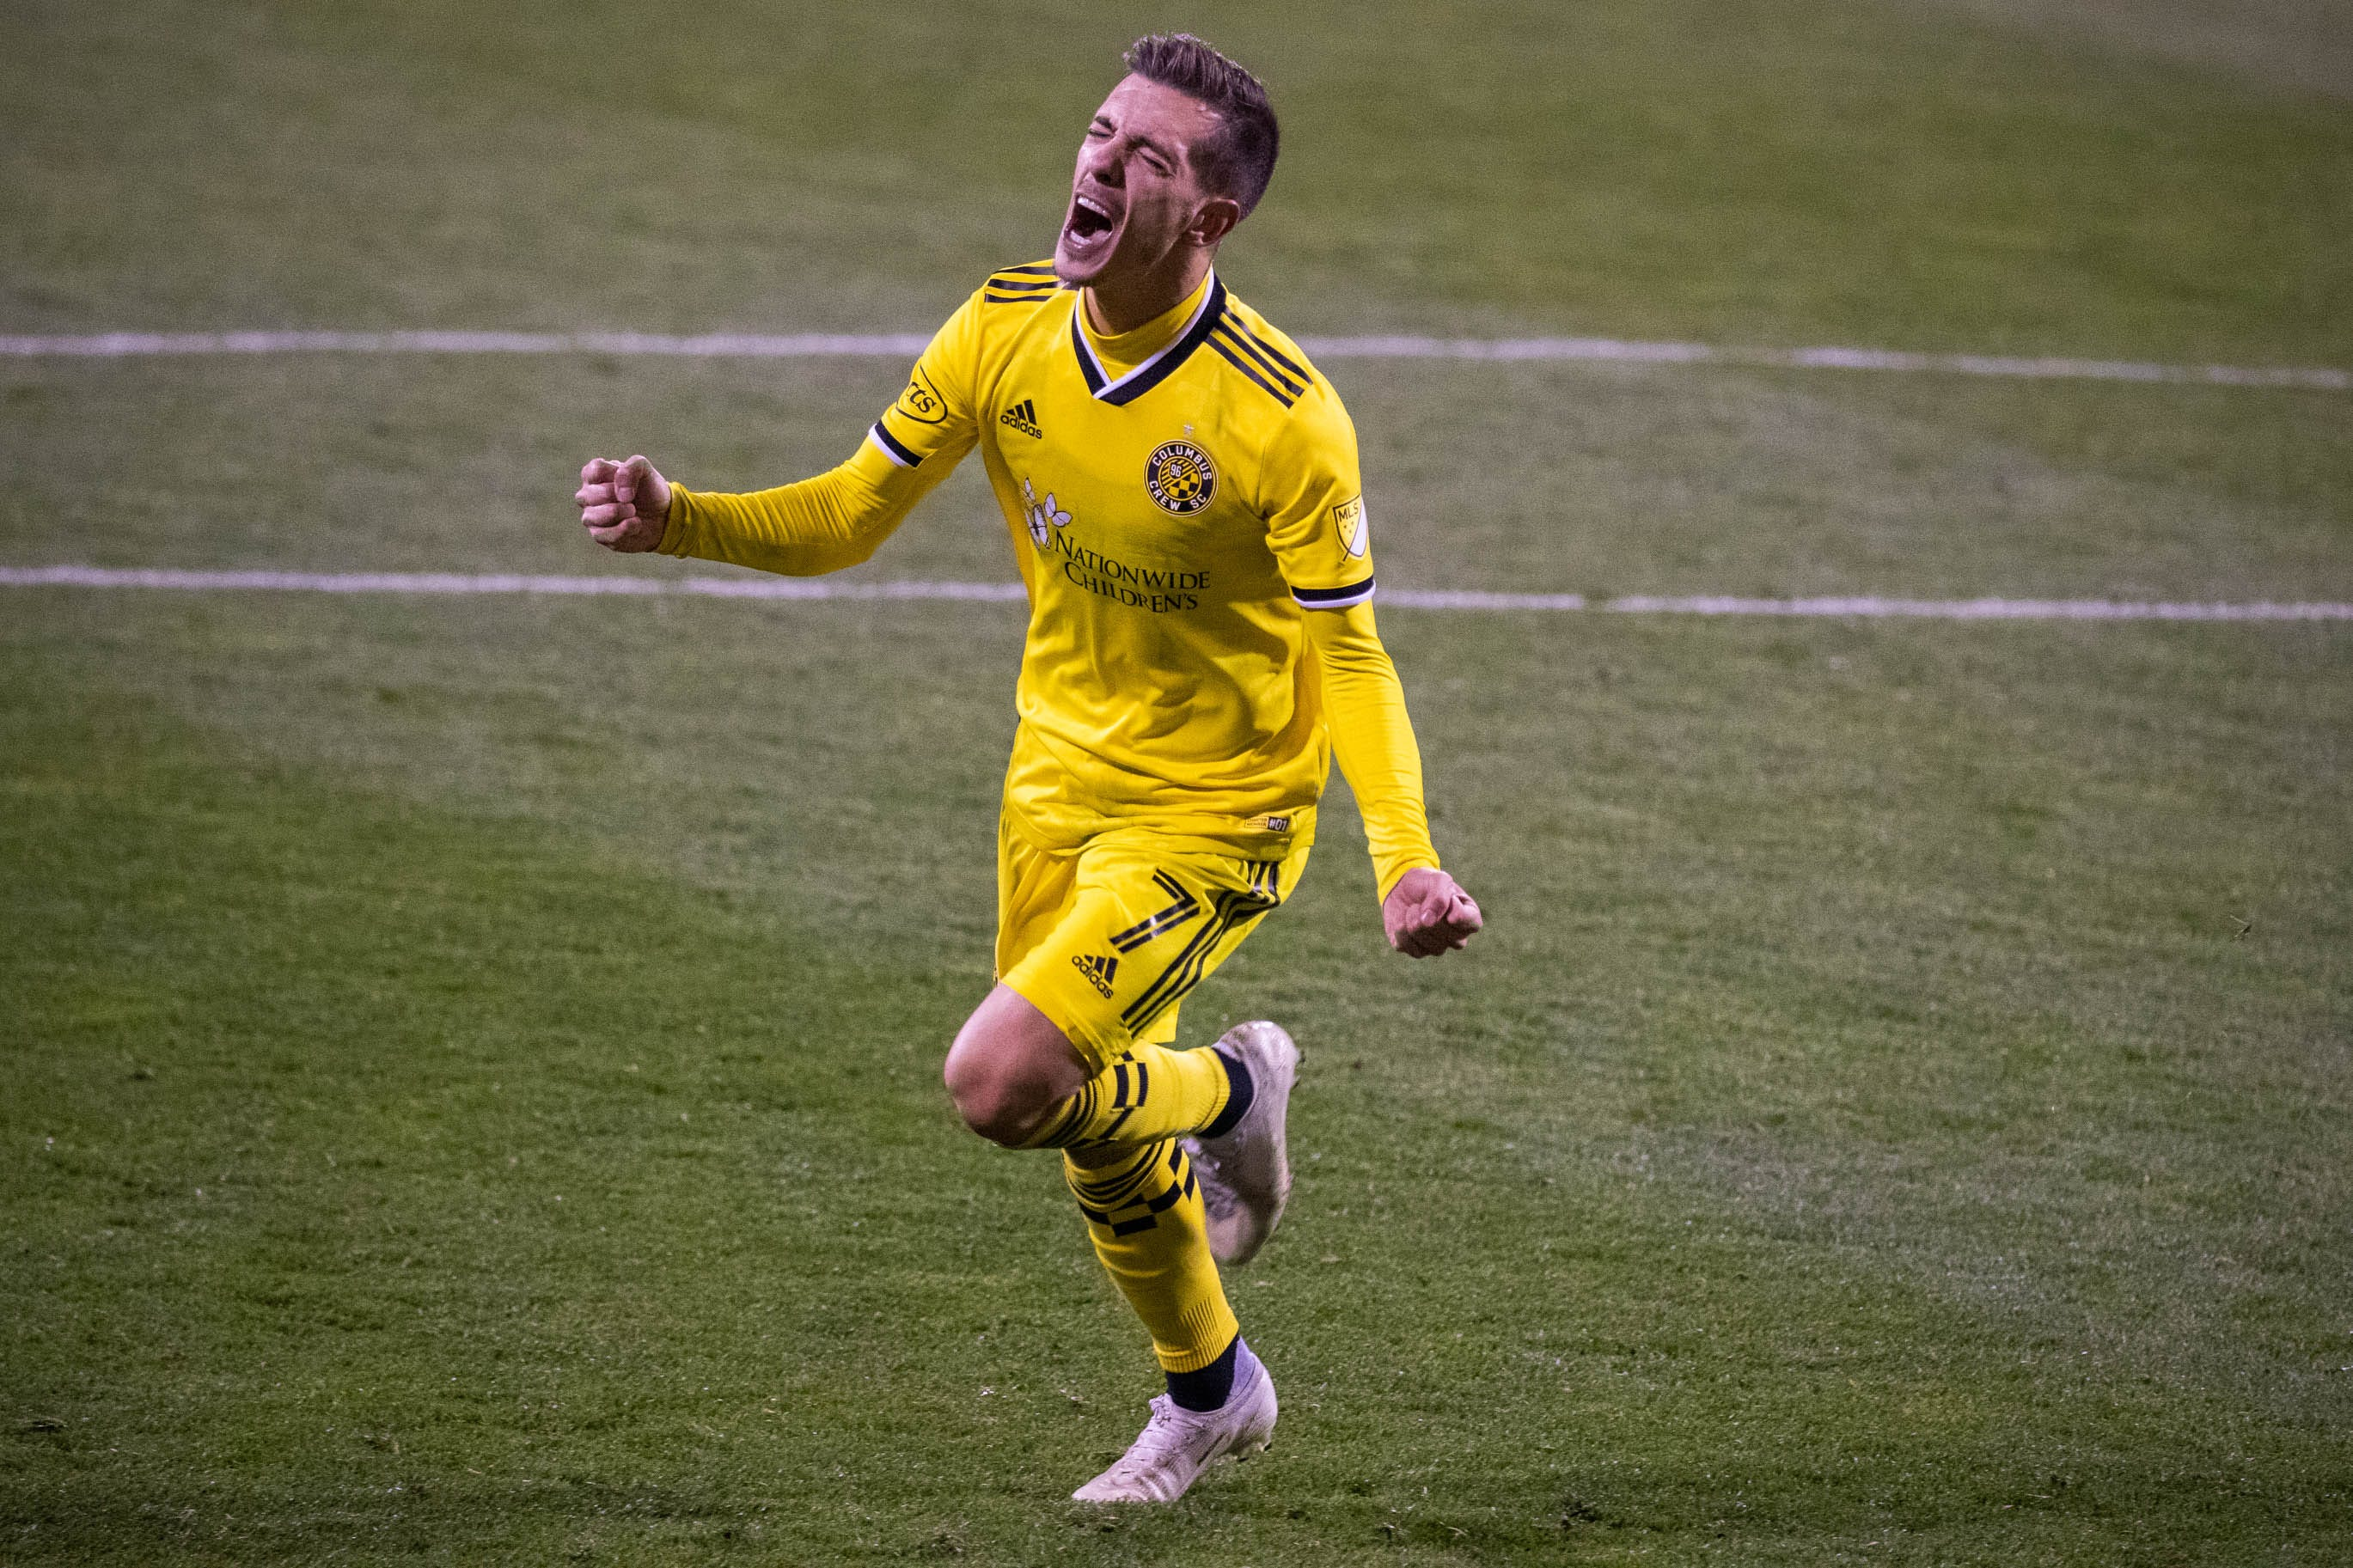 Columbus Crew defeats Nashville SC in extra time, advances to Eastern Conference final vs. New England Revolution